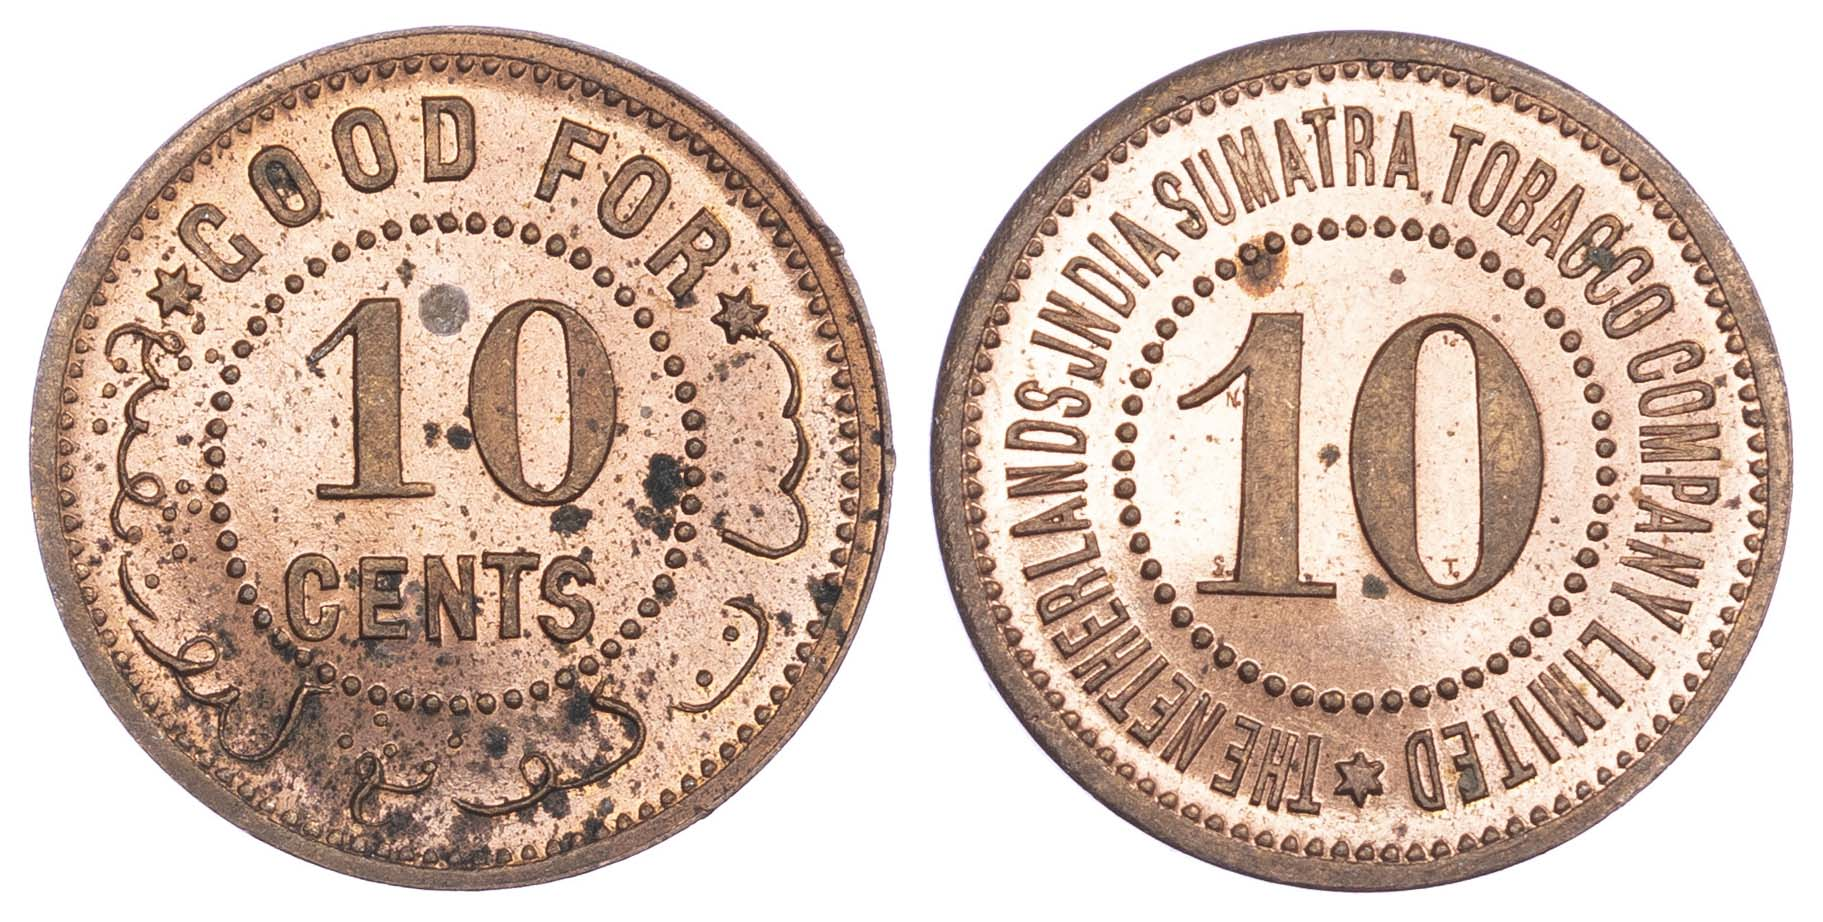 Netherlands East Indies, Sumatra, copper Proof 10 Cents, Tobacco Token